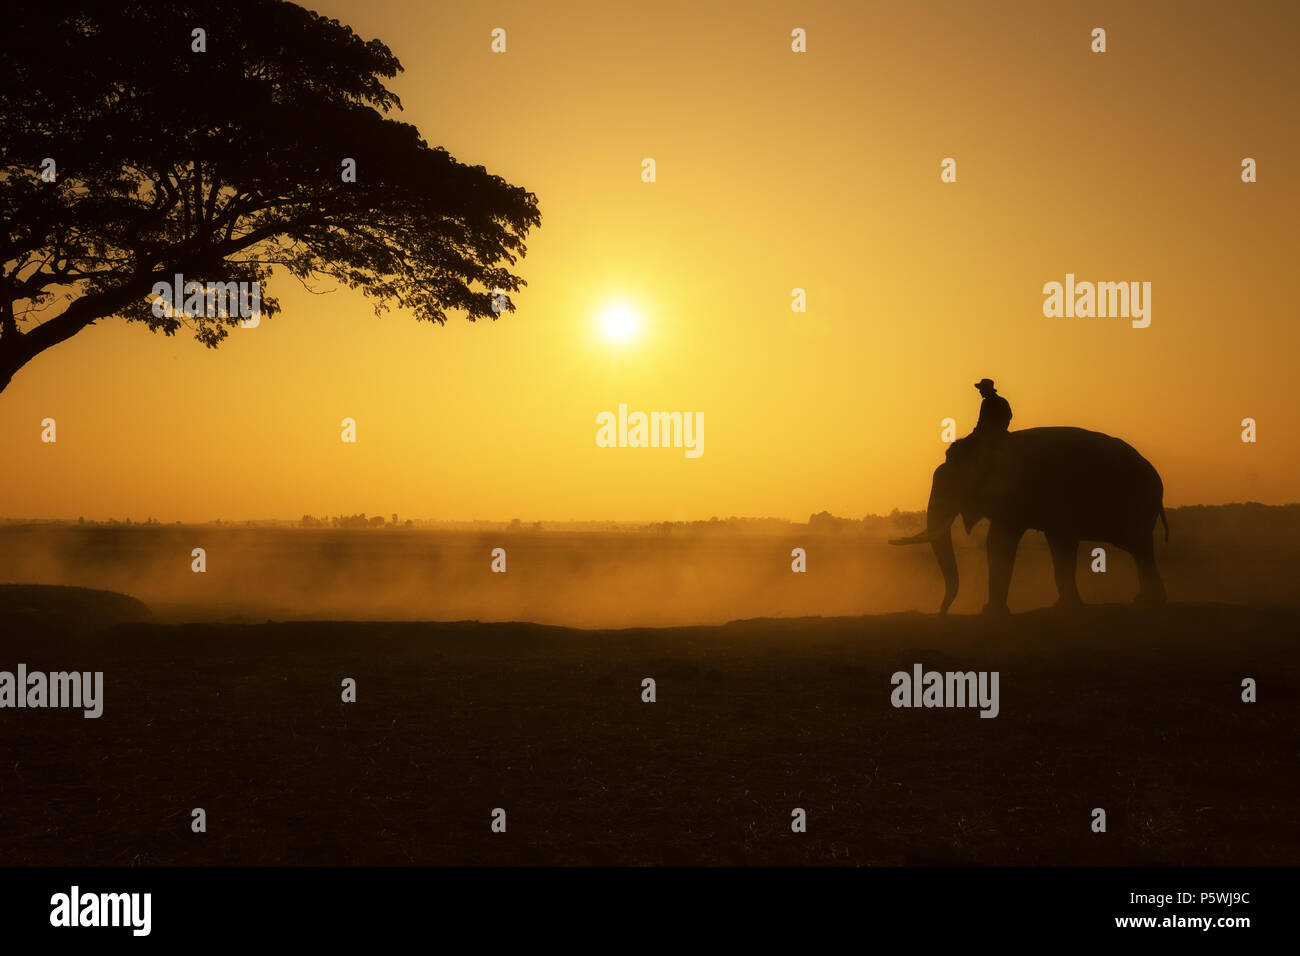 Golden hour The mahout and elephant silhouette on field morning time this the life of peoples in Chang Village  Surin Province, Thailand. Tradition li - Stock Image